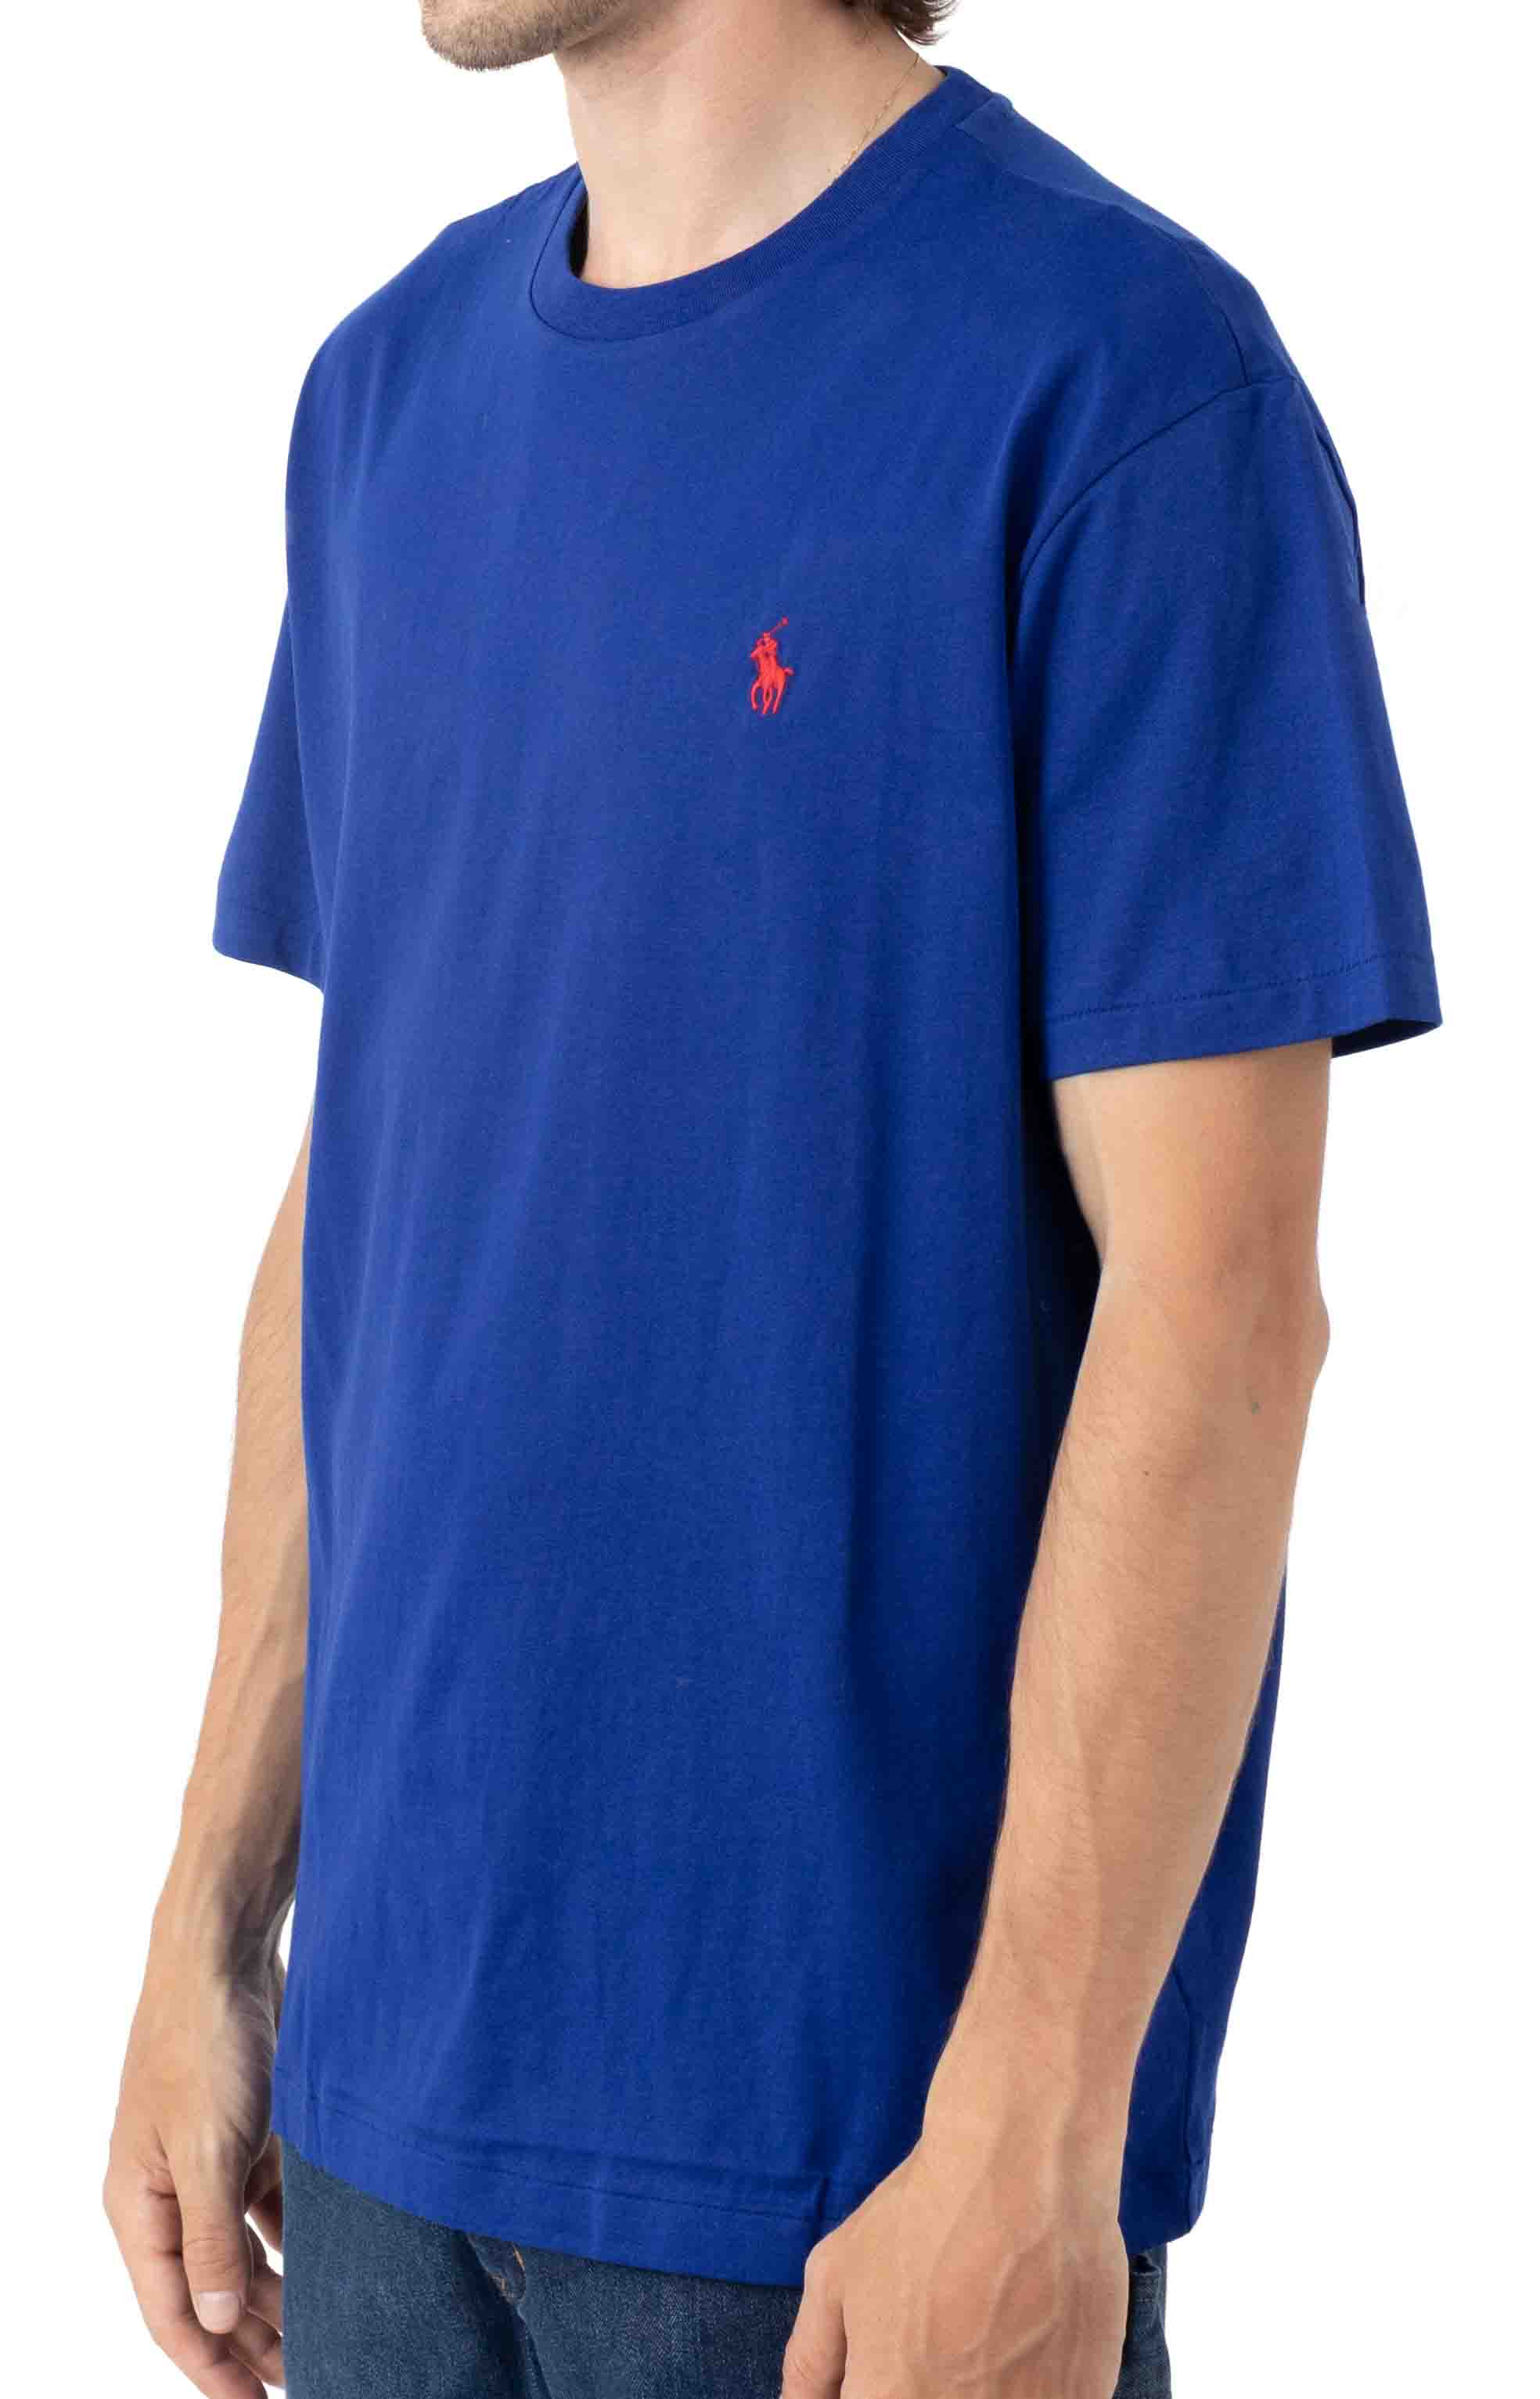 Classic Solid Crewneck T-Shirt - Heritage Royal/Red 2